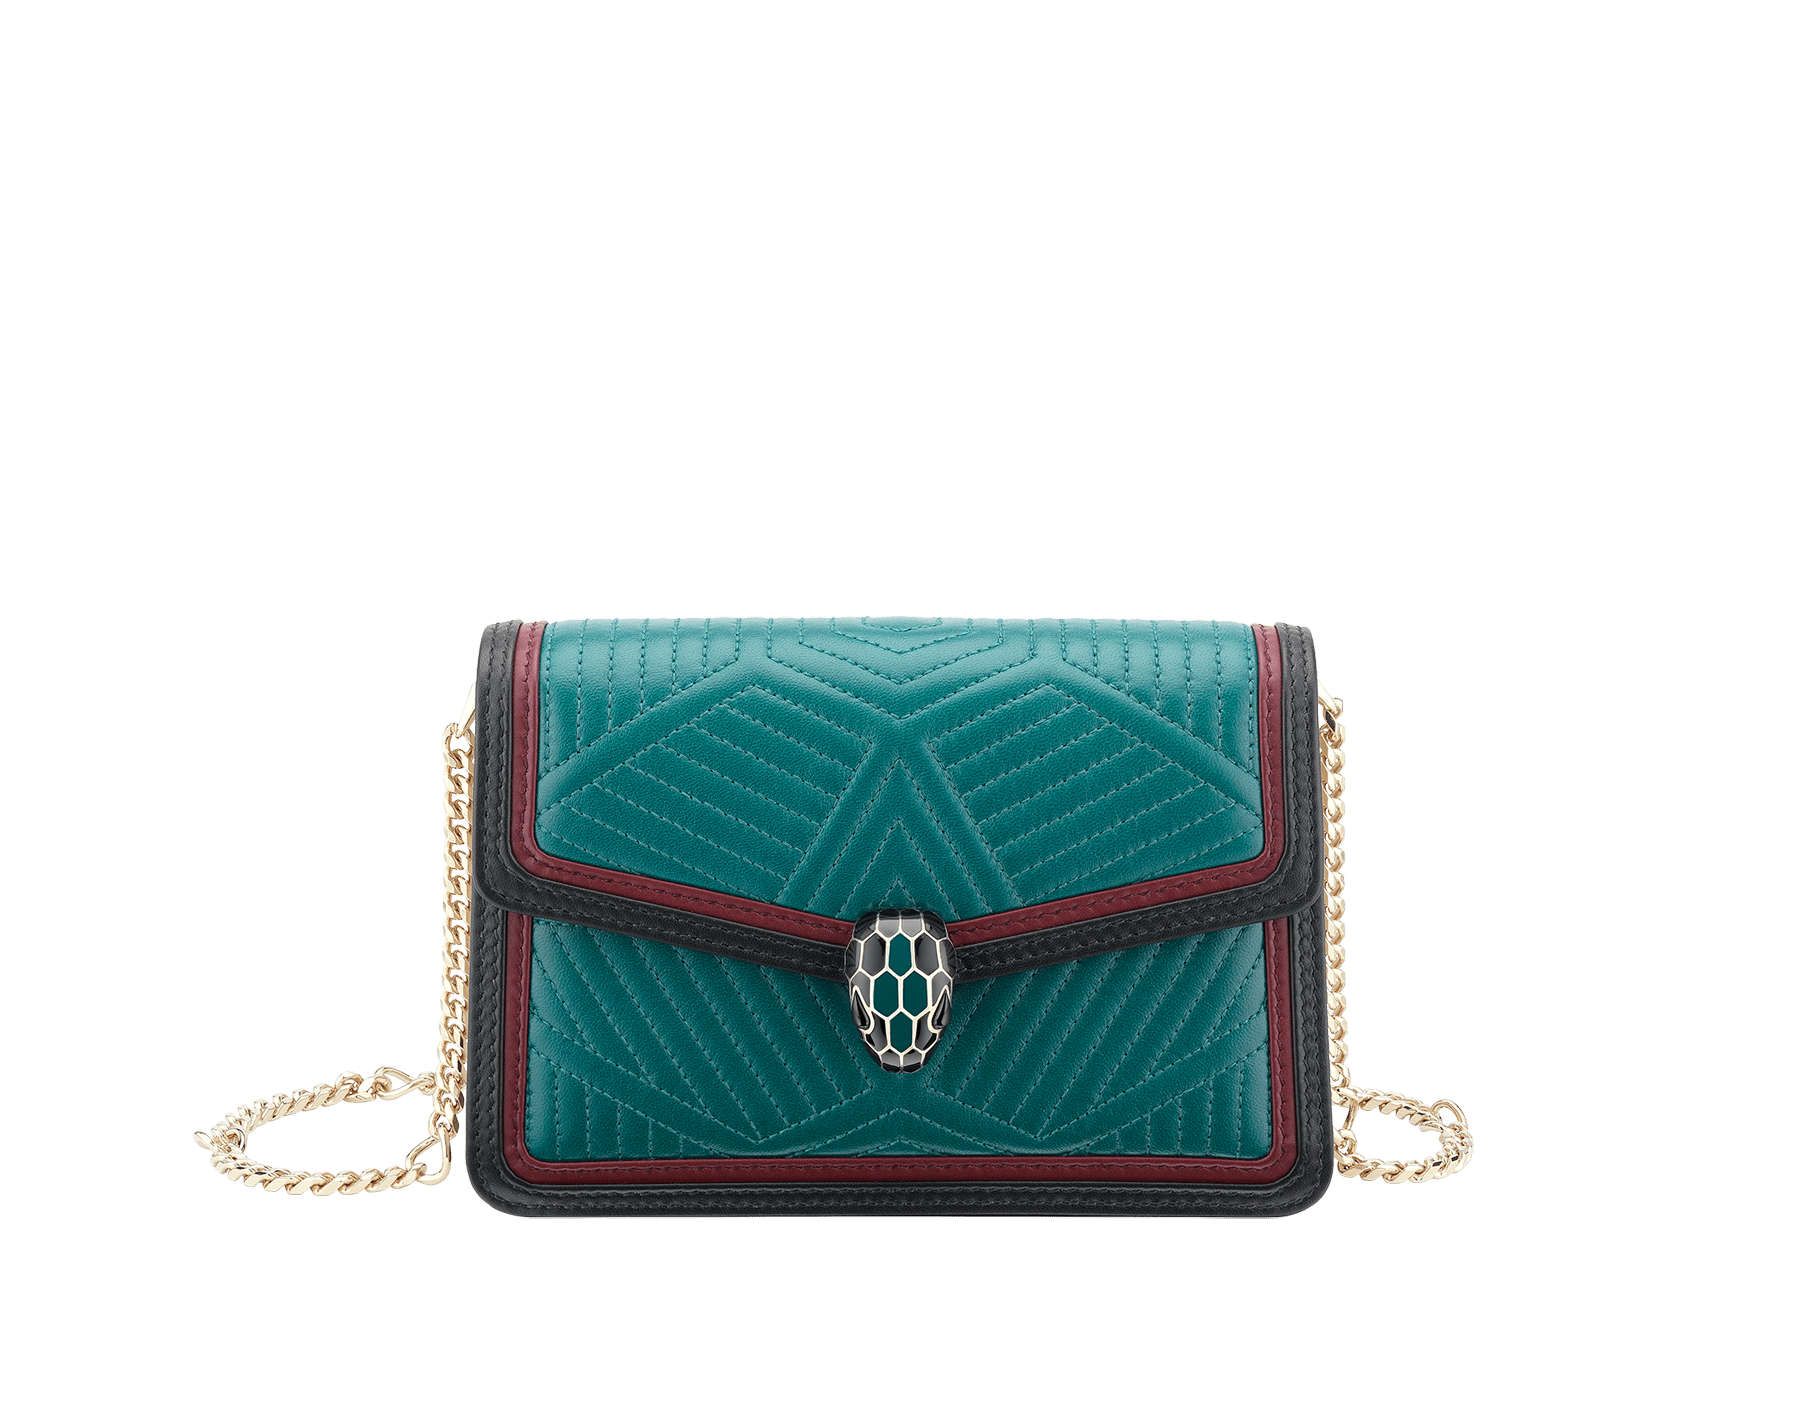 """Serpenti Diamond Blast"" crossbody micro bag in deep jade quilted nappa leather body and roman garnet and black calf leather frames. Iconic snakehead closure in light gold plated brass enriched with deep jade and black enamel and black onyx eyes. 288104 image 1"